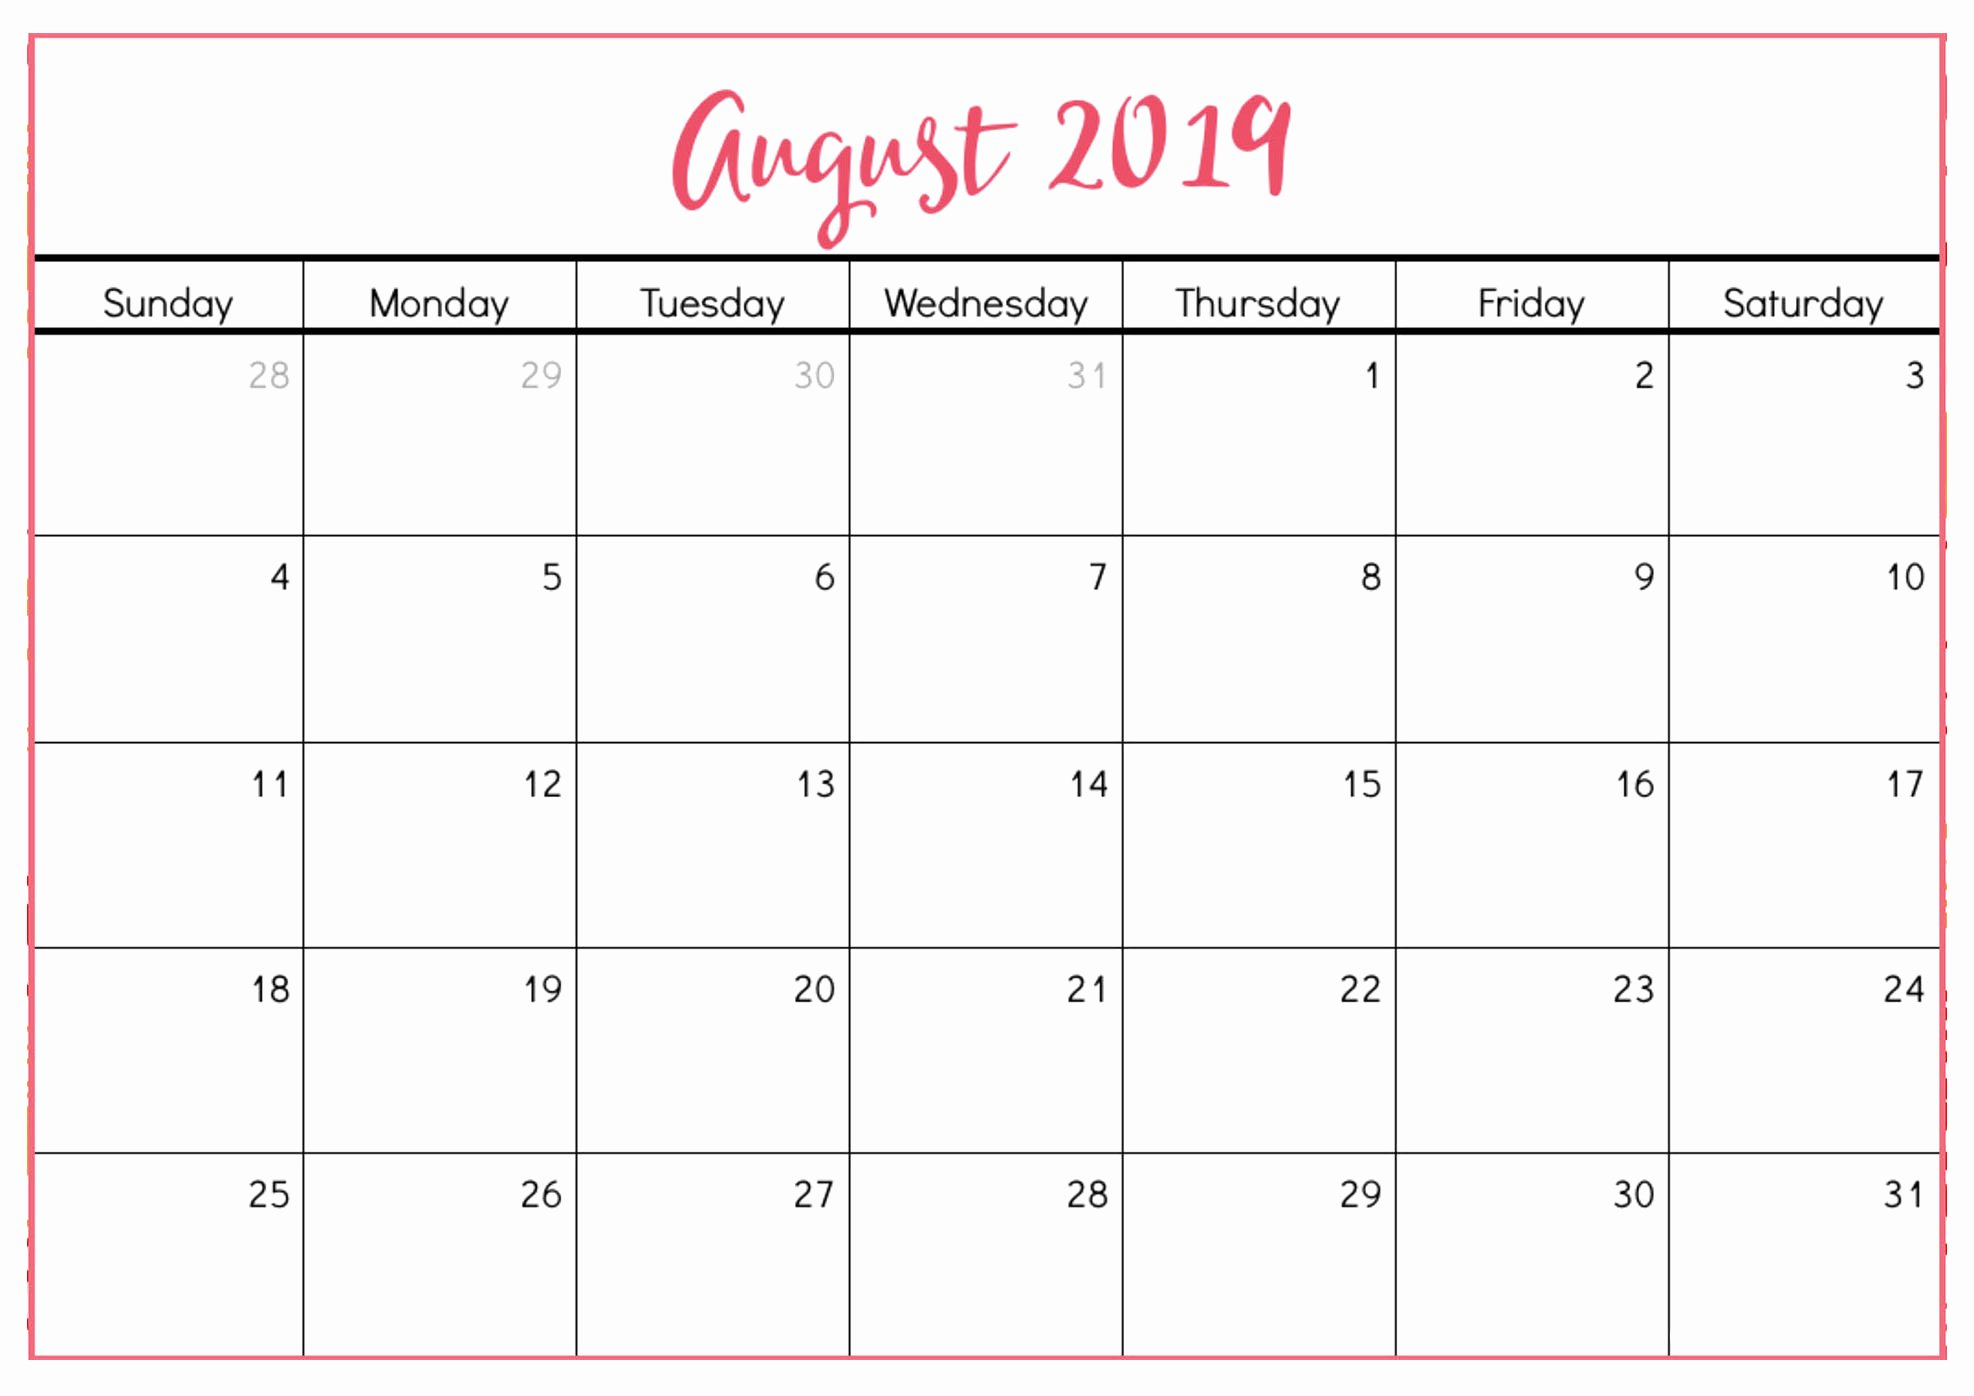 Free 2019 Calendar Template Awesome Free Printable August 2019 Calendar Cute